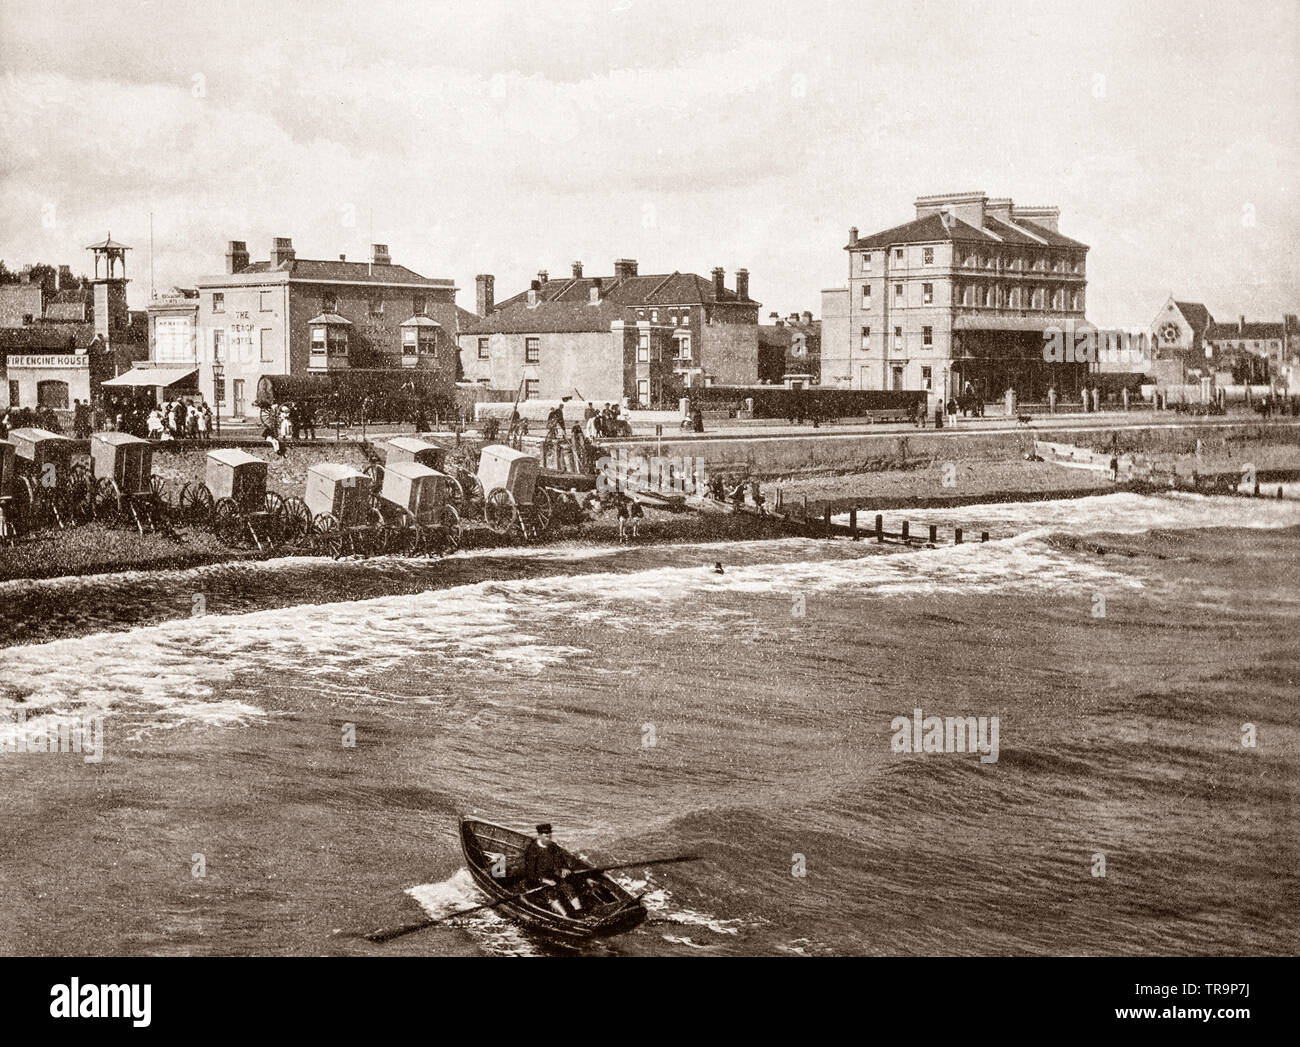 A 19th Century view of bathing huts on Bognor beach. Bognor Regis is a seaside resort in West Sussex on the south coast of England. It was developed slowly in the late 18th century on what was a sandy, undeveloped coastline but grew rapidly following the coming of the railway in 1864. - Stock Image